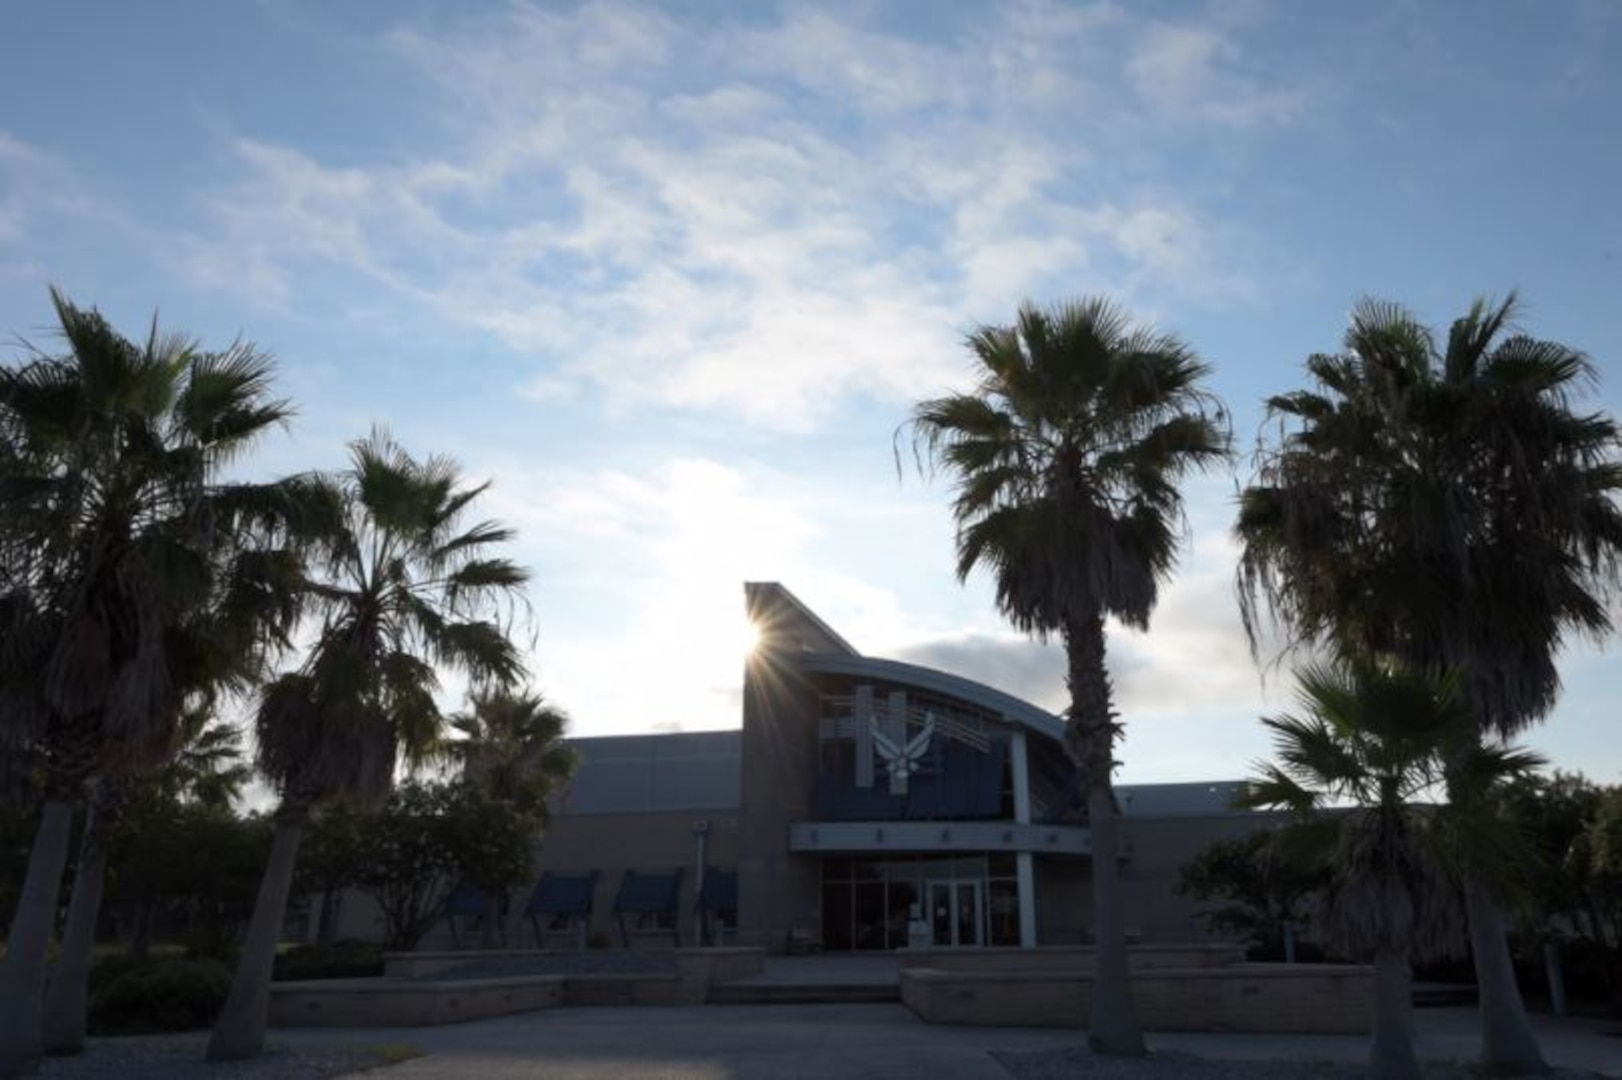 The sun rises behind the Fitness Center at Tyndall Air Force Base, Florida, Aug. 6, 2021. The Fitness Center adjusted operating hours to comply with Health Protection Condition CHARLIE to allow for deep sanitation of the facility and has limited access to manned-hours only. (U.S. Air Force photo by Staff Sgt. Magen M. Reeves)